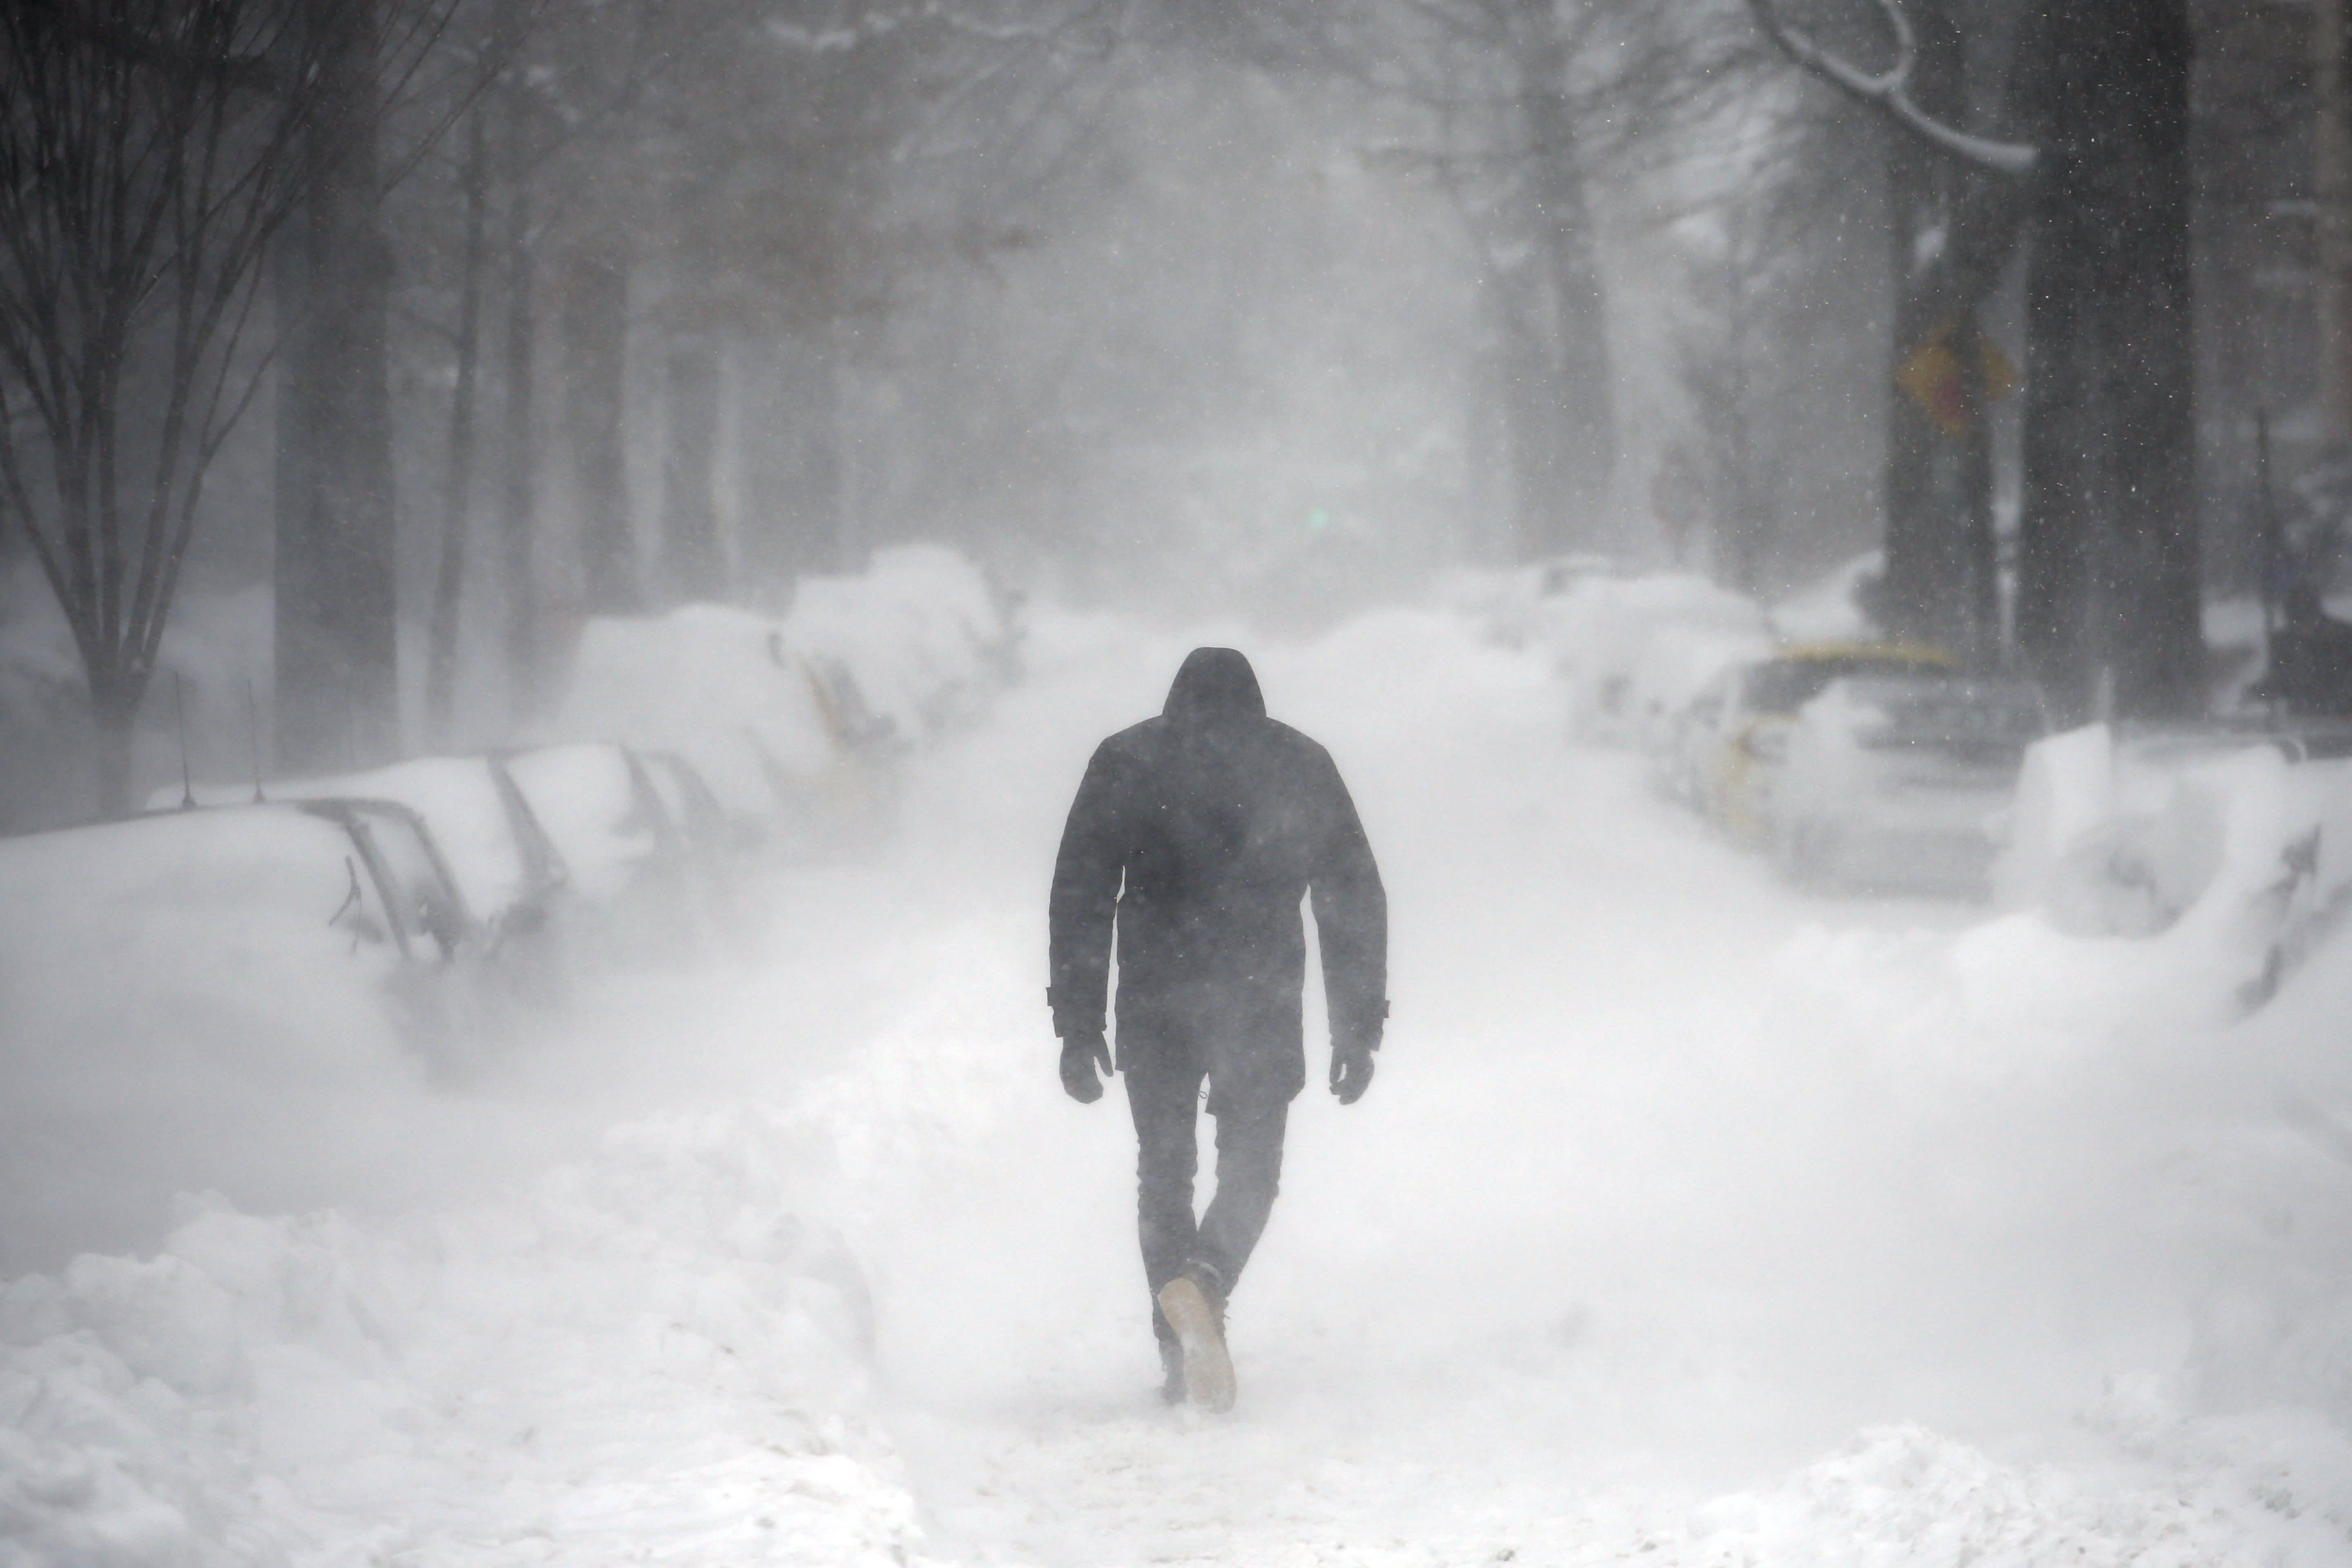 noreaster big winter storm affects corporate earnings